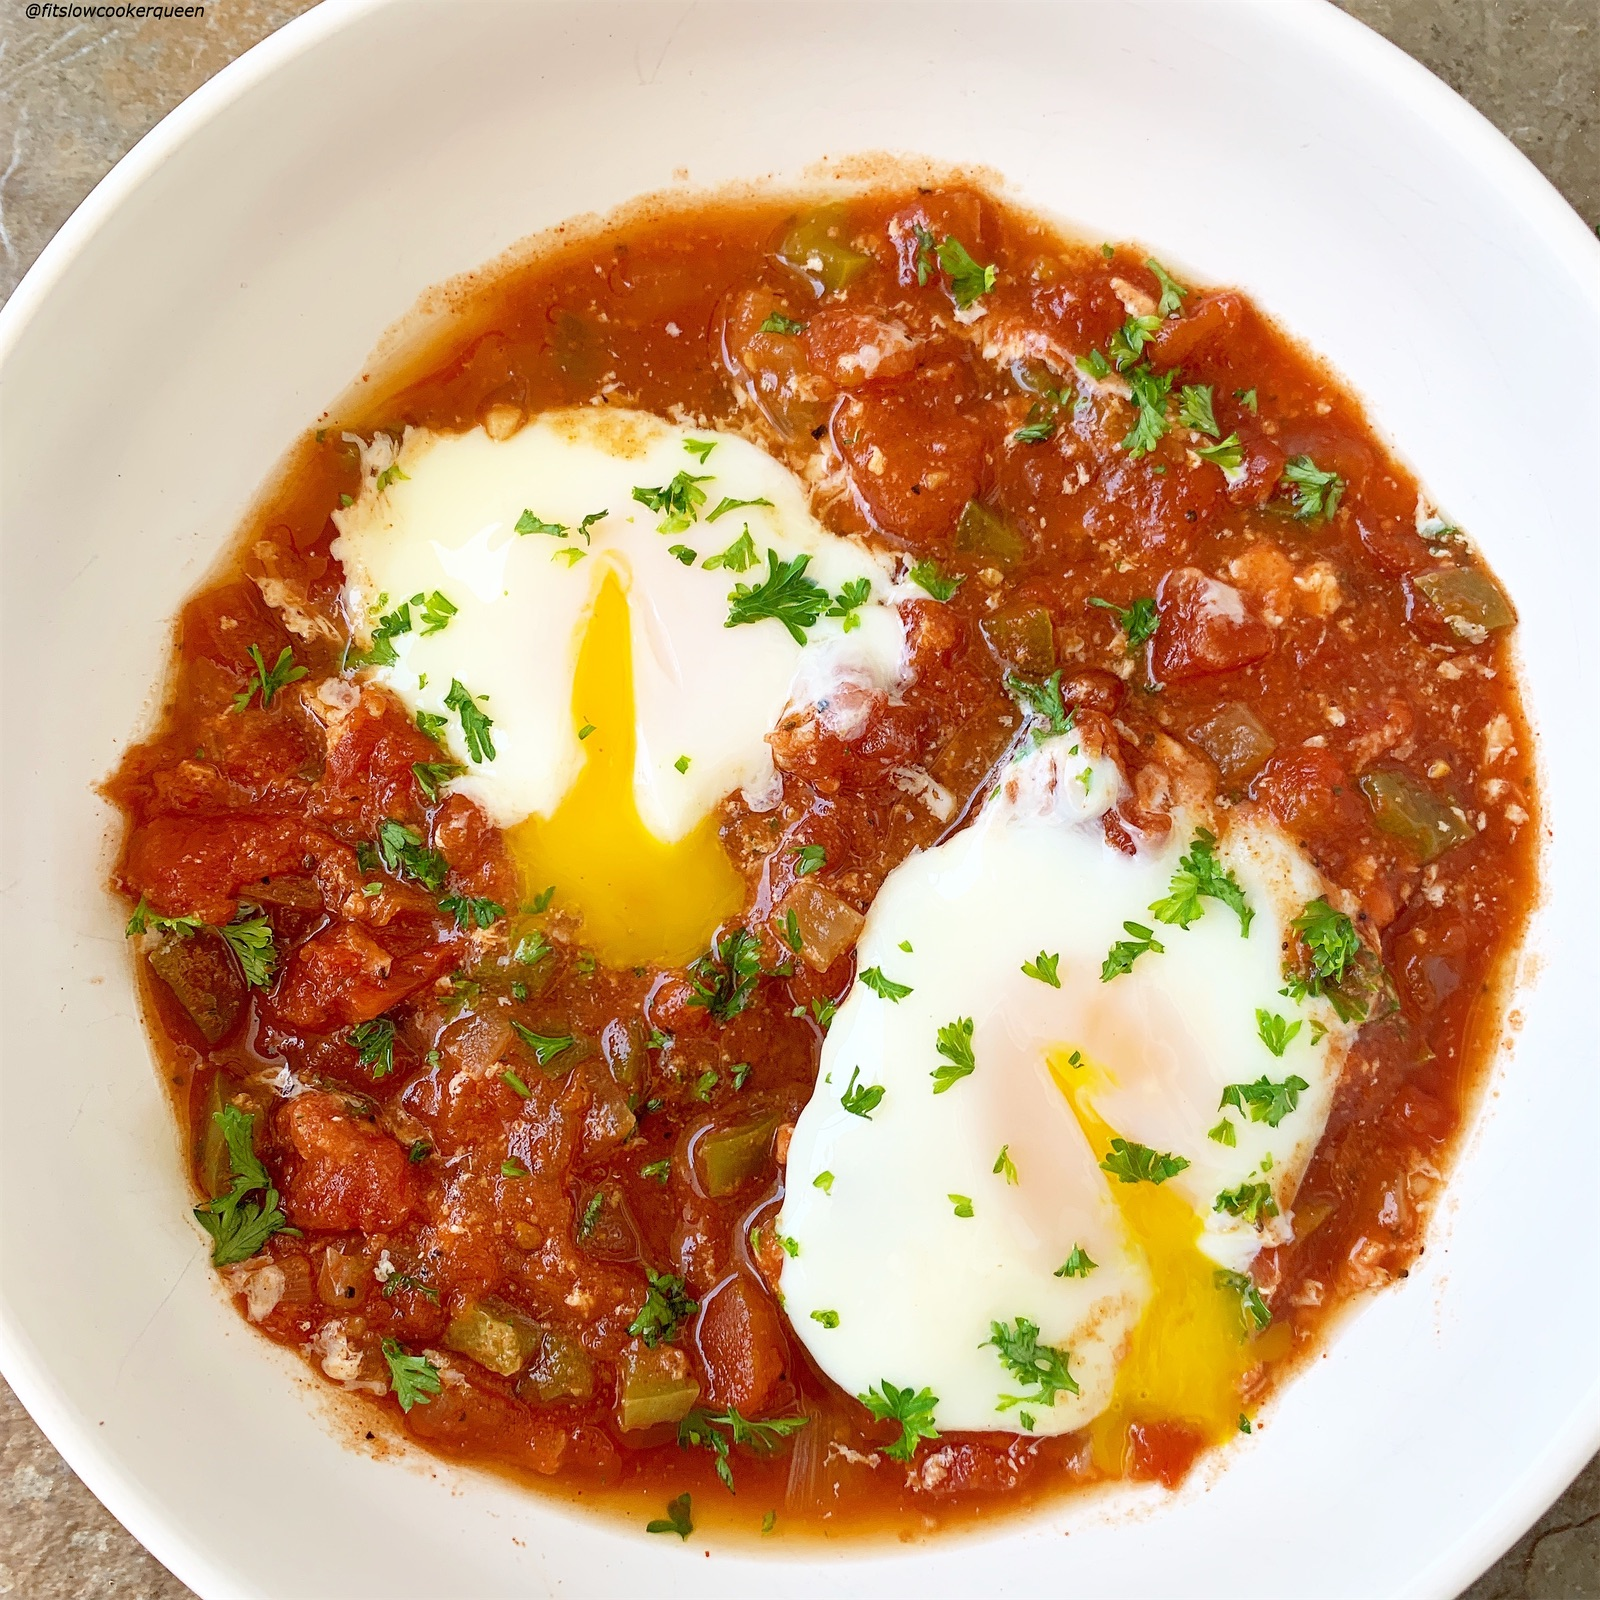 Shakshuka is simple yet flavorful Middle Eastern dish made with tomatoes, eggs, and spices. Make this recipe in your slow cooker or Instant Pot.